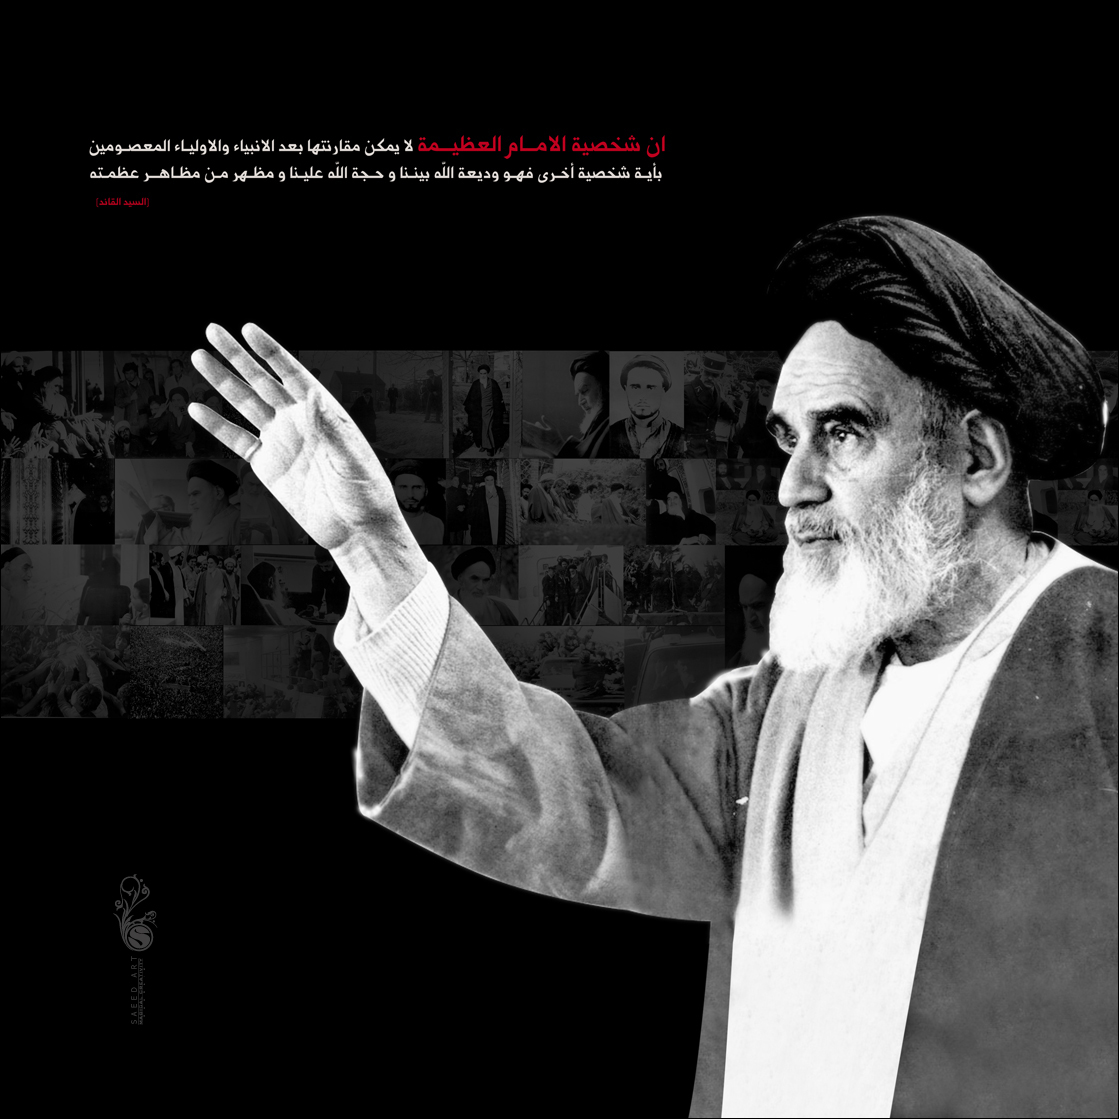 Grand Ayatollah Khomeini (1900-1989) - political & spiritual leader of Iran Imam_Khomeini_by_SAEED_ART